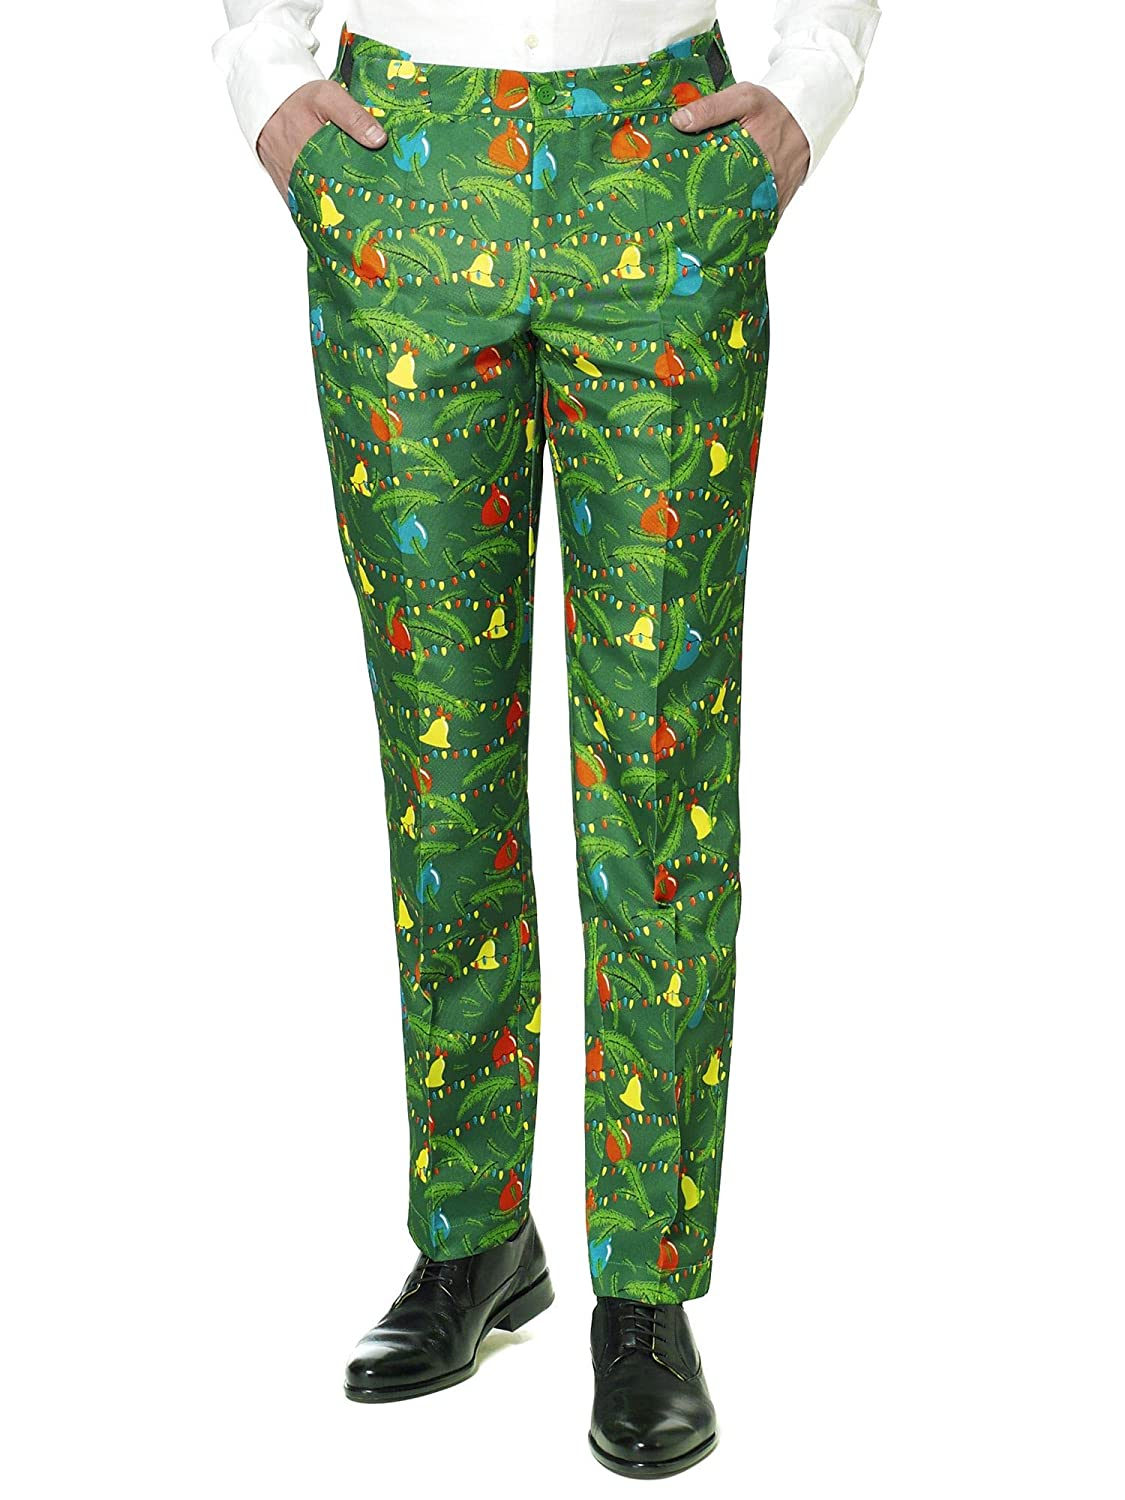 c29f475080548 Amazon.com: Suitmeister Christmas Suits for Men in Different Prints – Ugly  Xmas Sweater Costumes Include Jacket Pants & Tie: Clothing